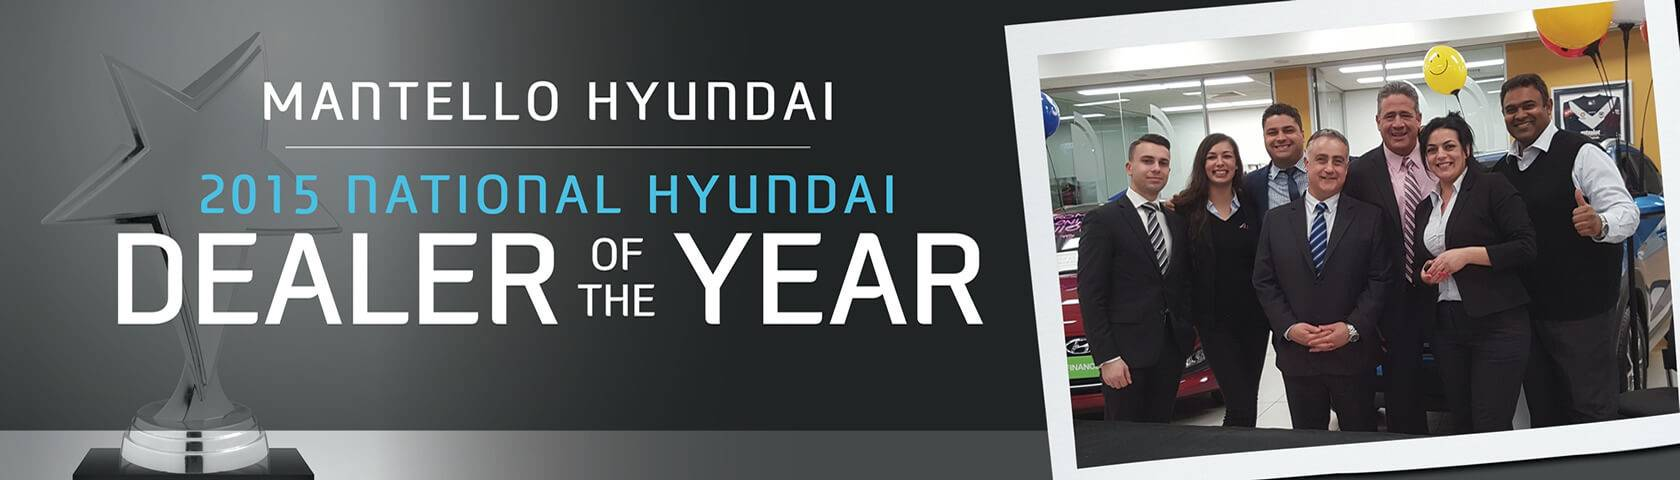 Mantello Hyundai Dealer of the Year